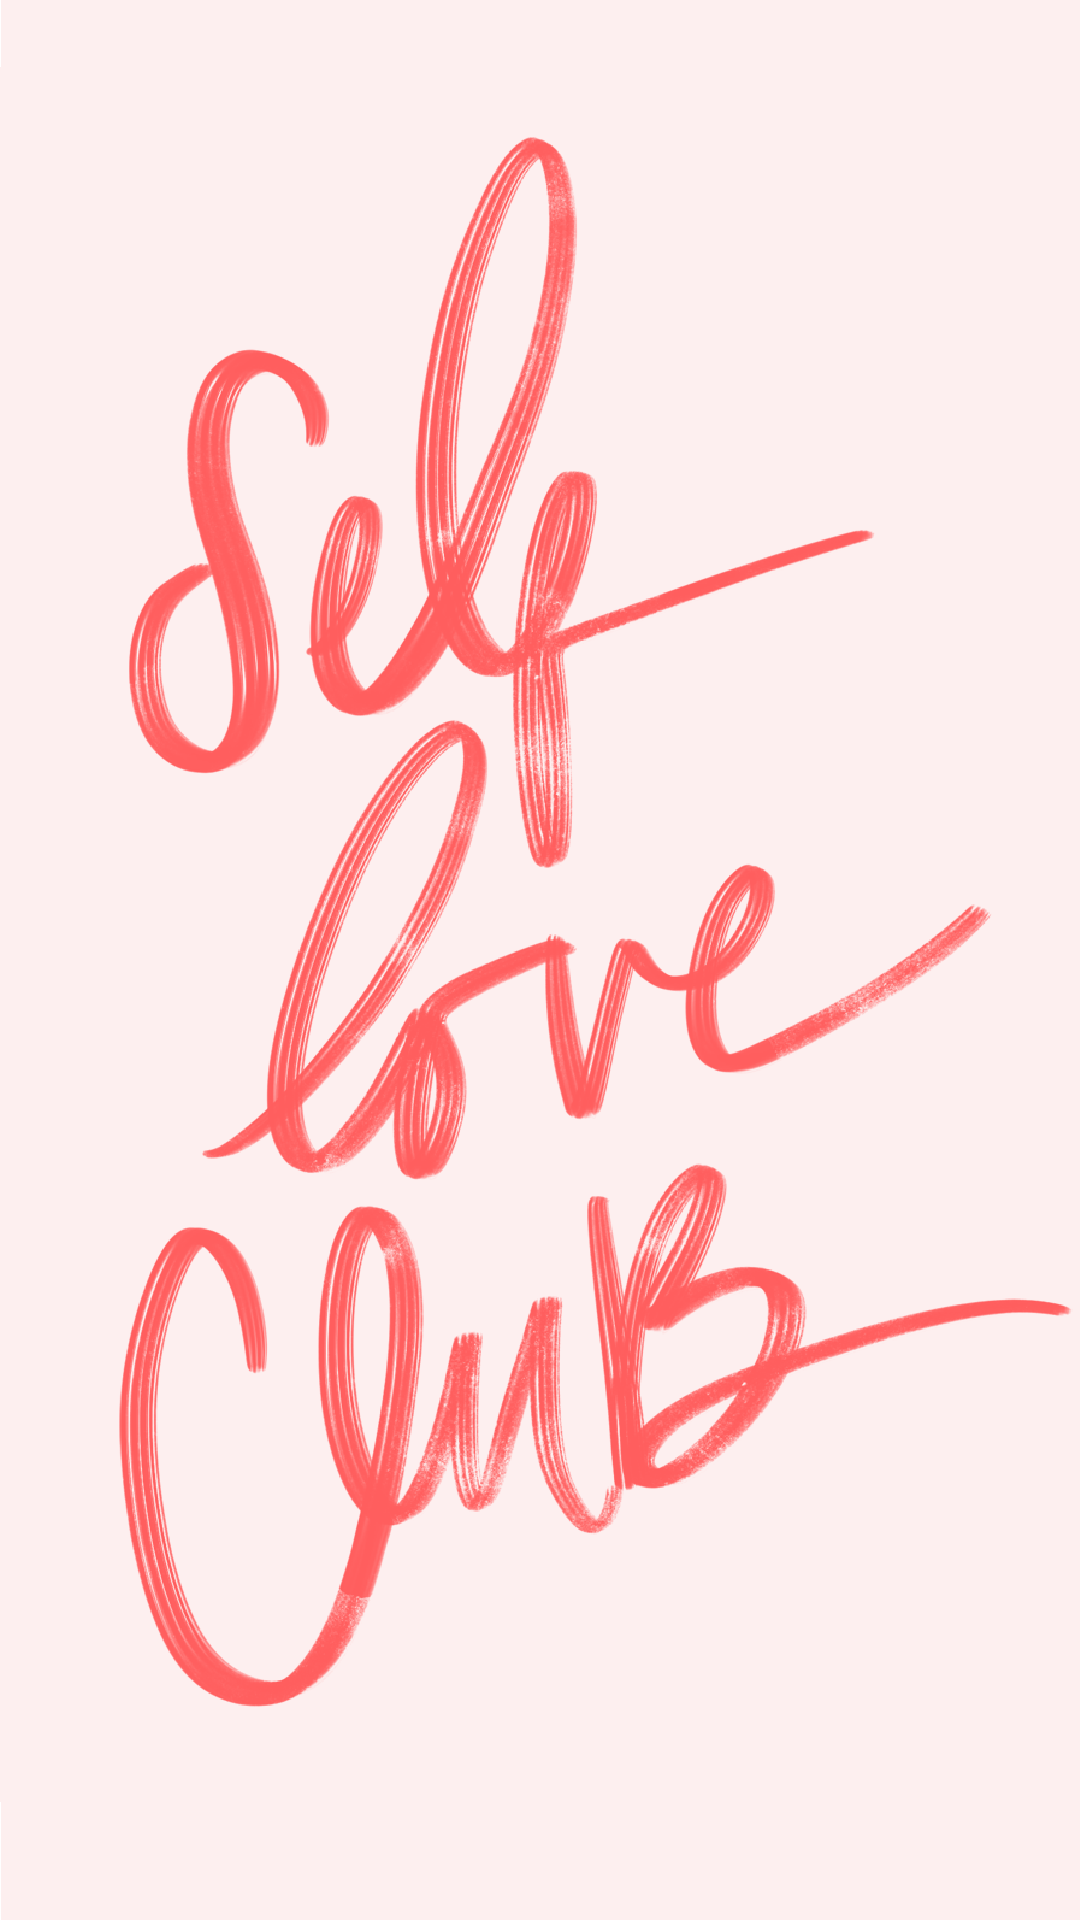 Self Love Wallpapers words x wisdom Wallpaper quotes Self 1080x1920